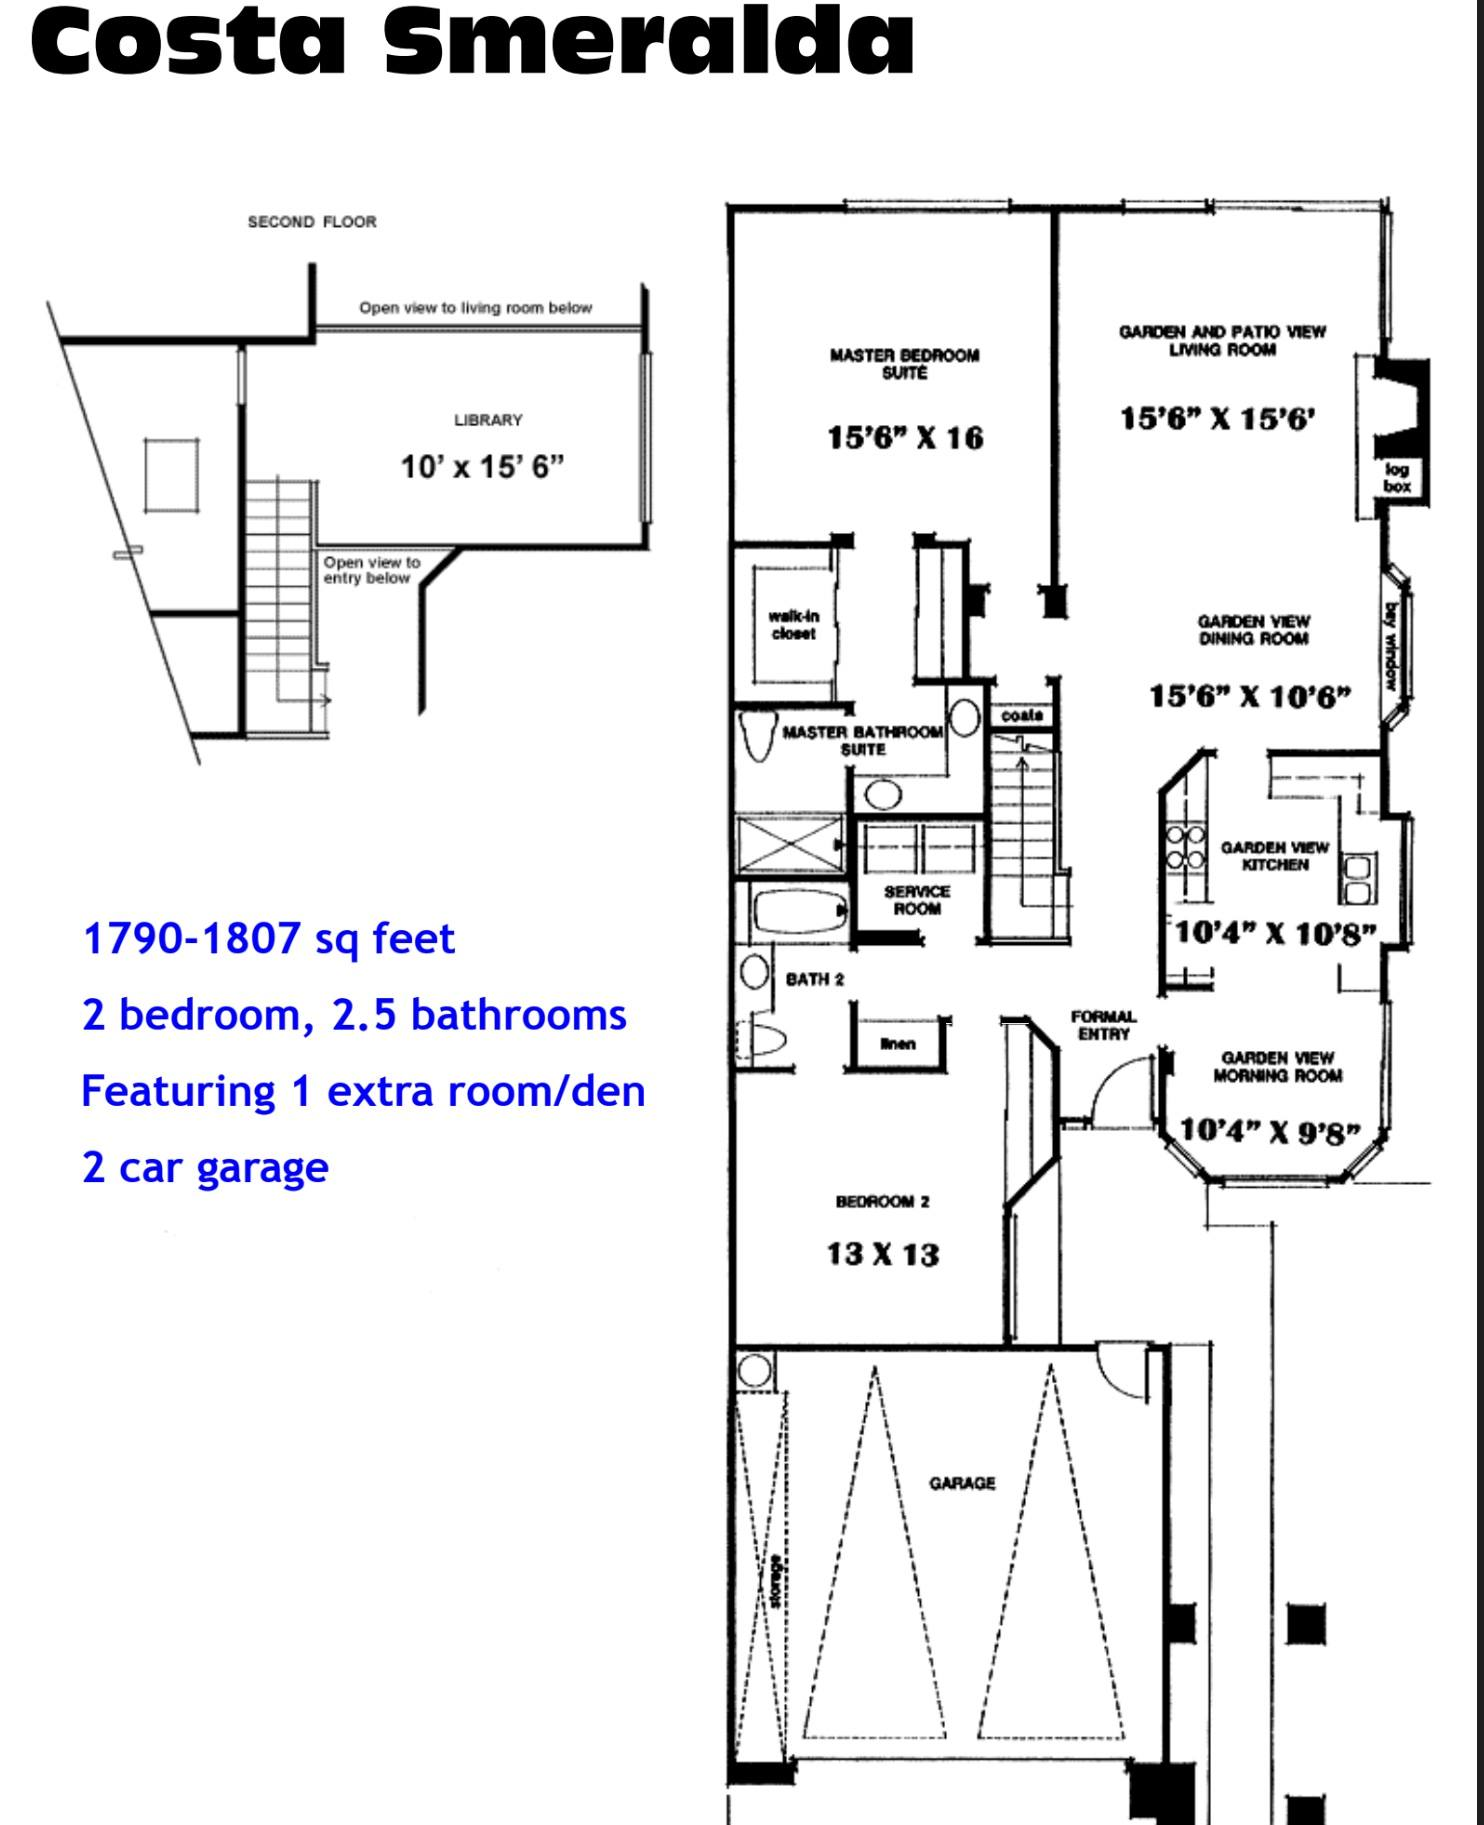 Ocean Hills Country Club Costa Smeralda Floor Plans Ocean Hills